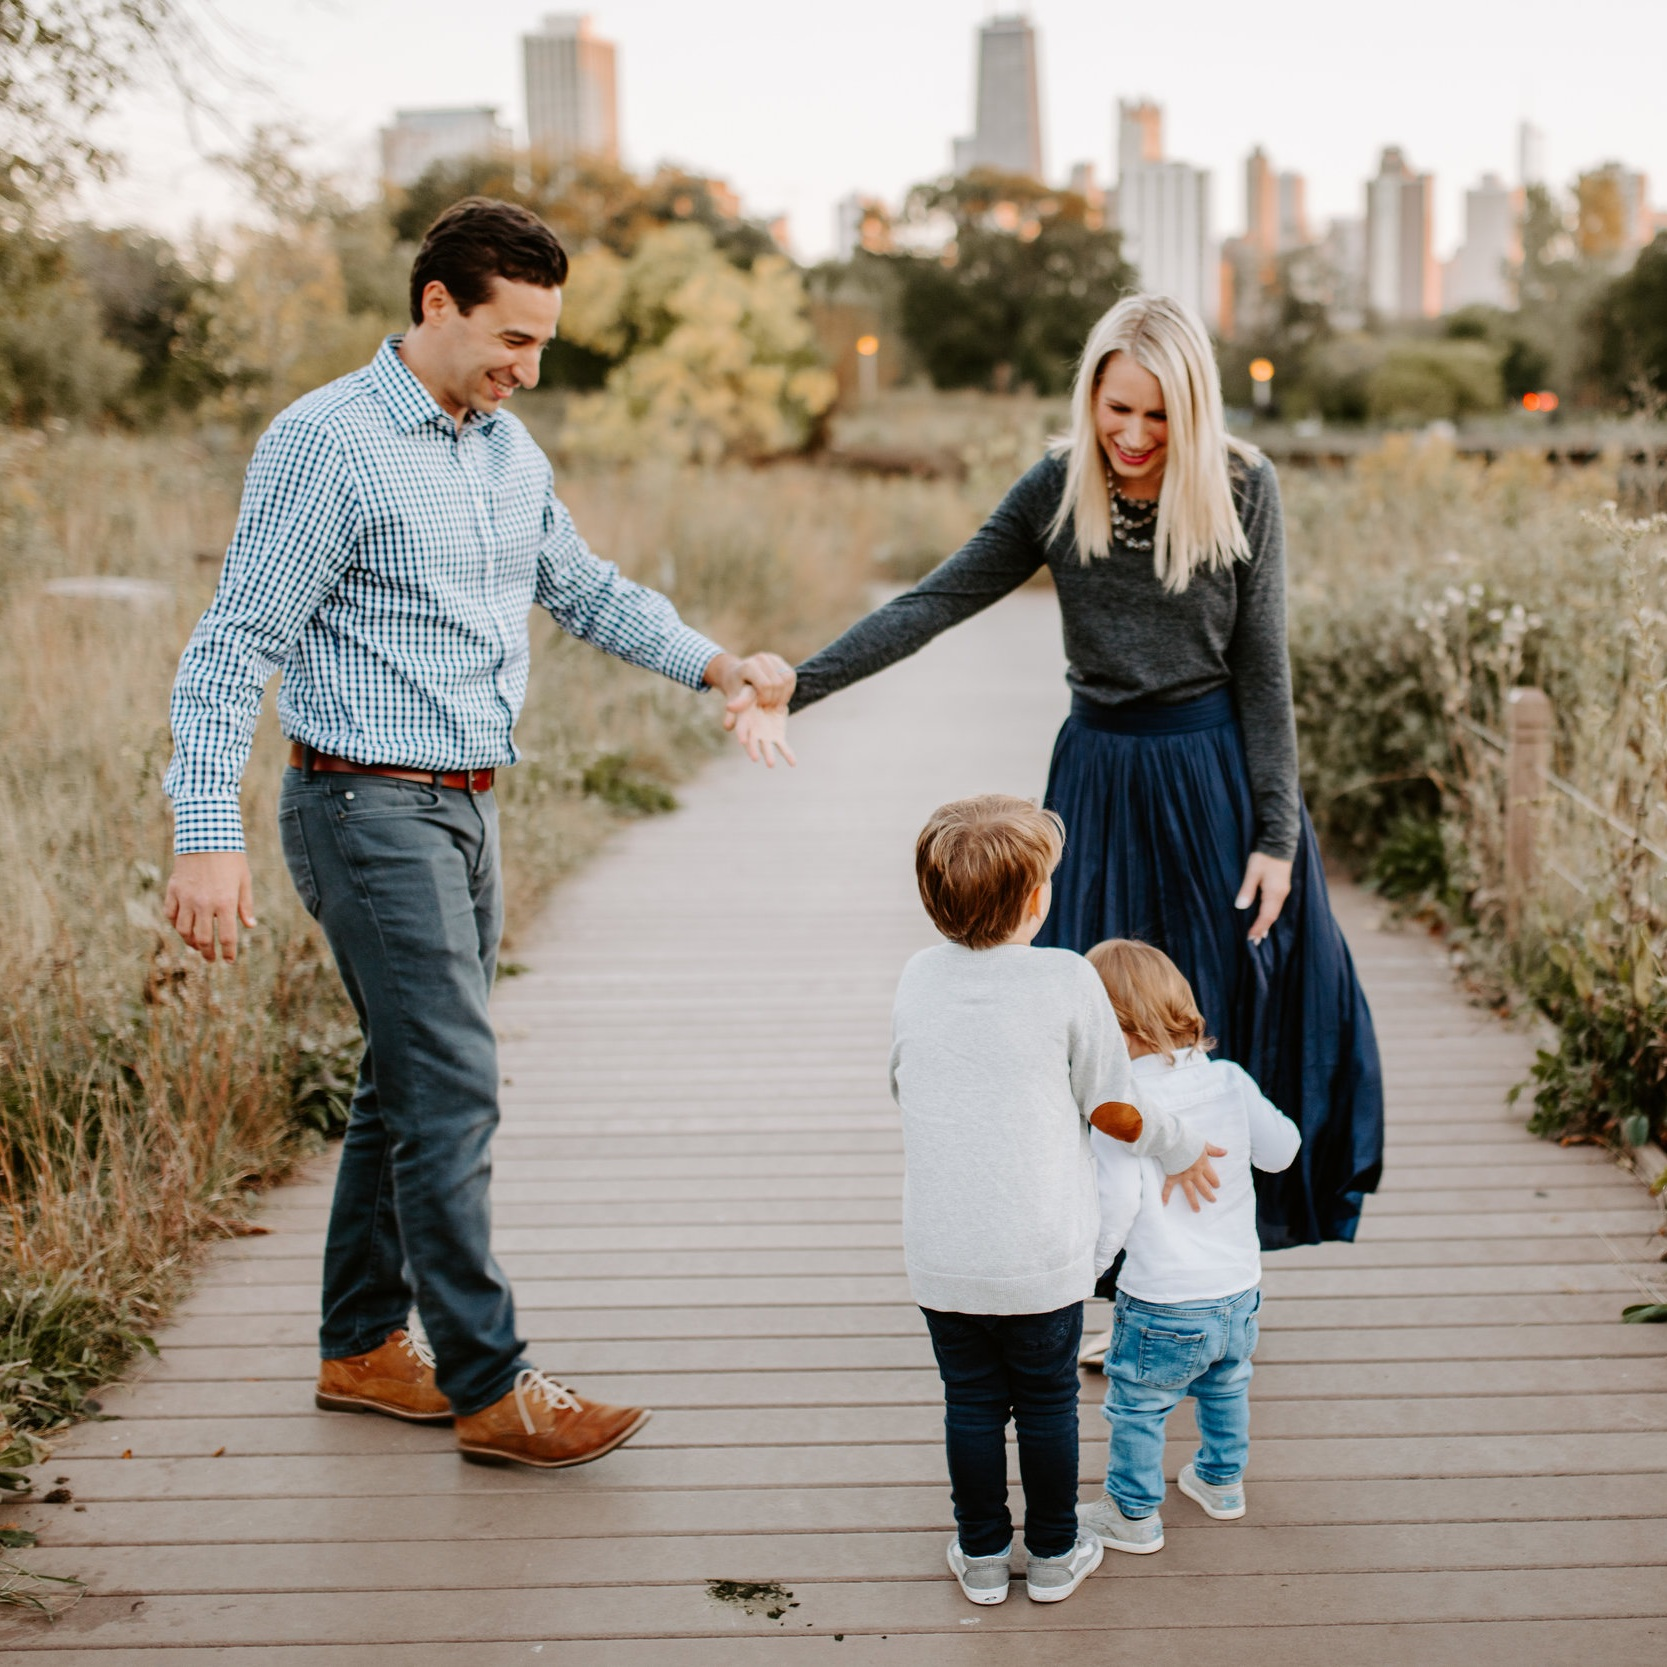 Lincoln Park Fall Family Photo by Kerri Carlquist Photography